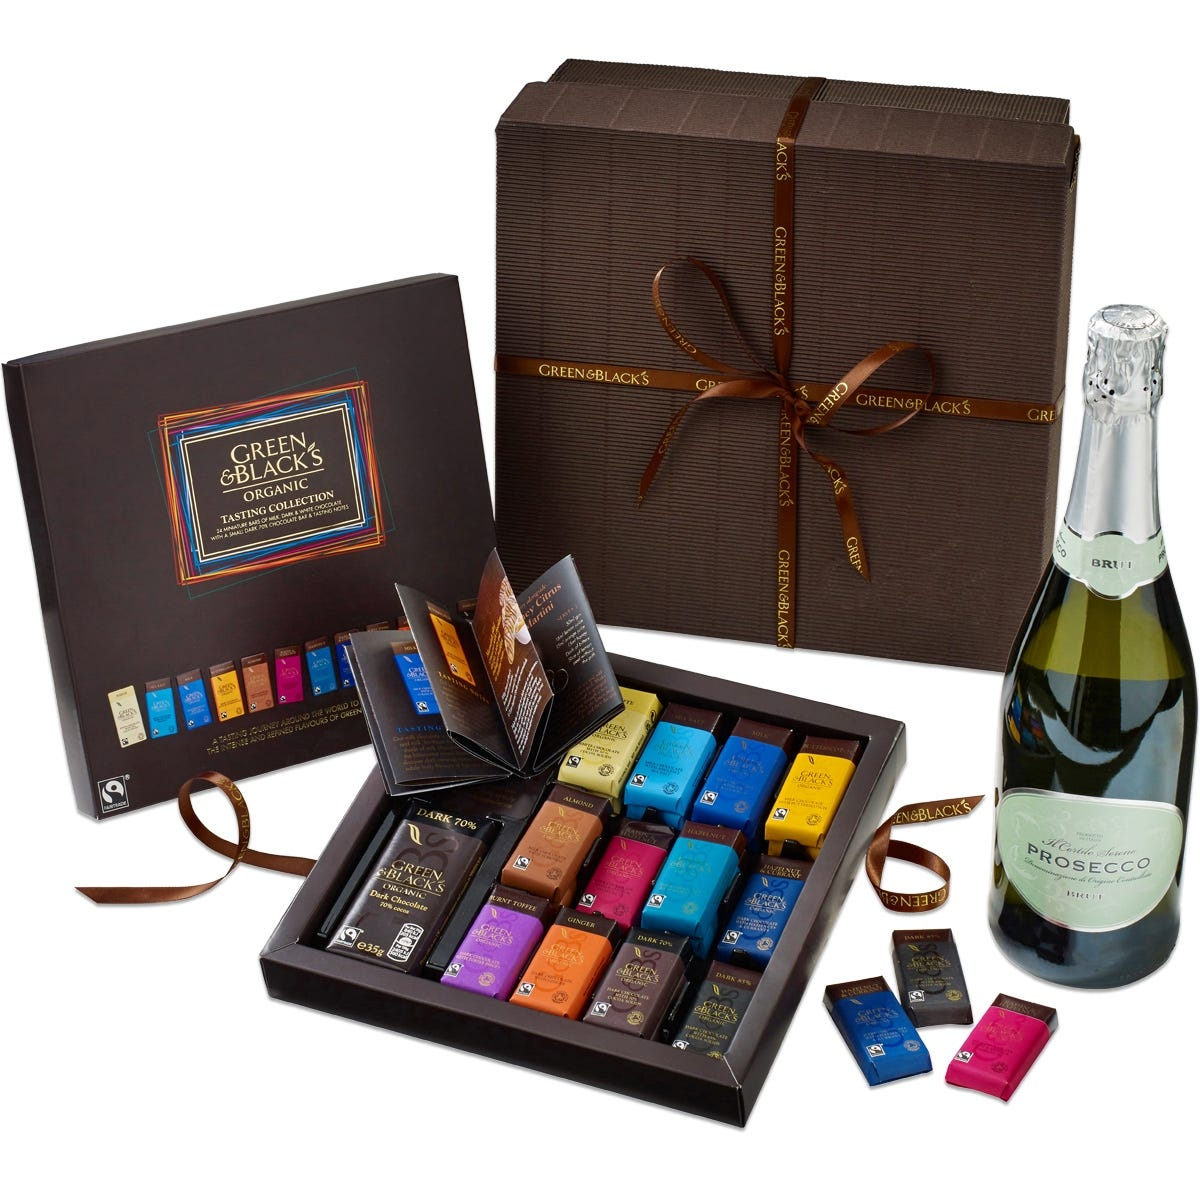 G&B's Organic Tasting Collection & Prosecco